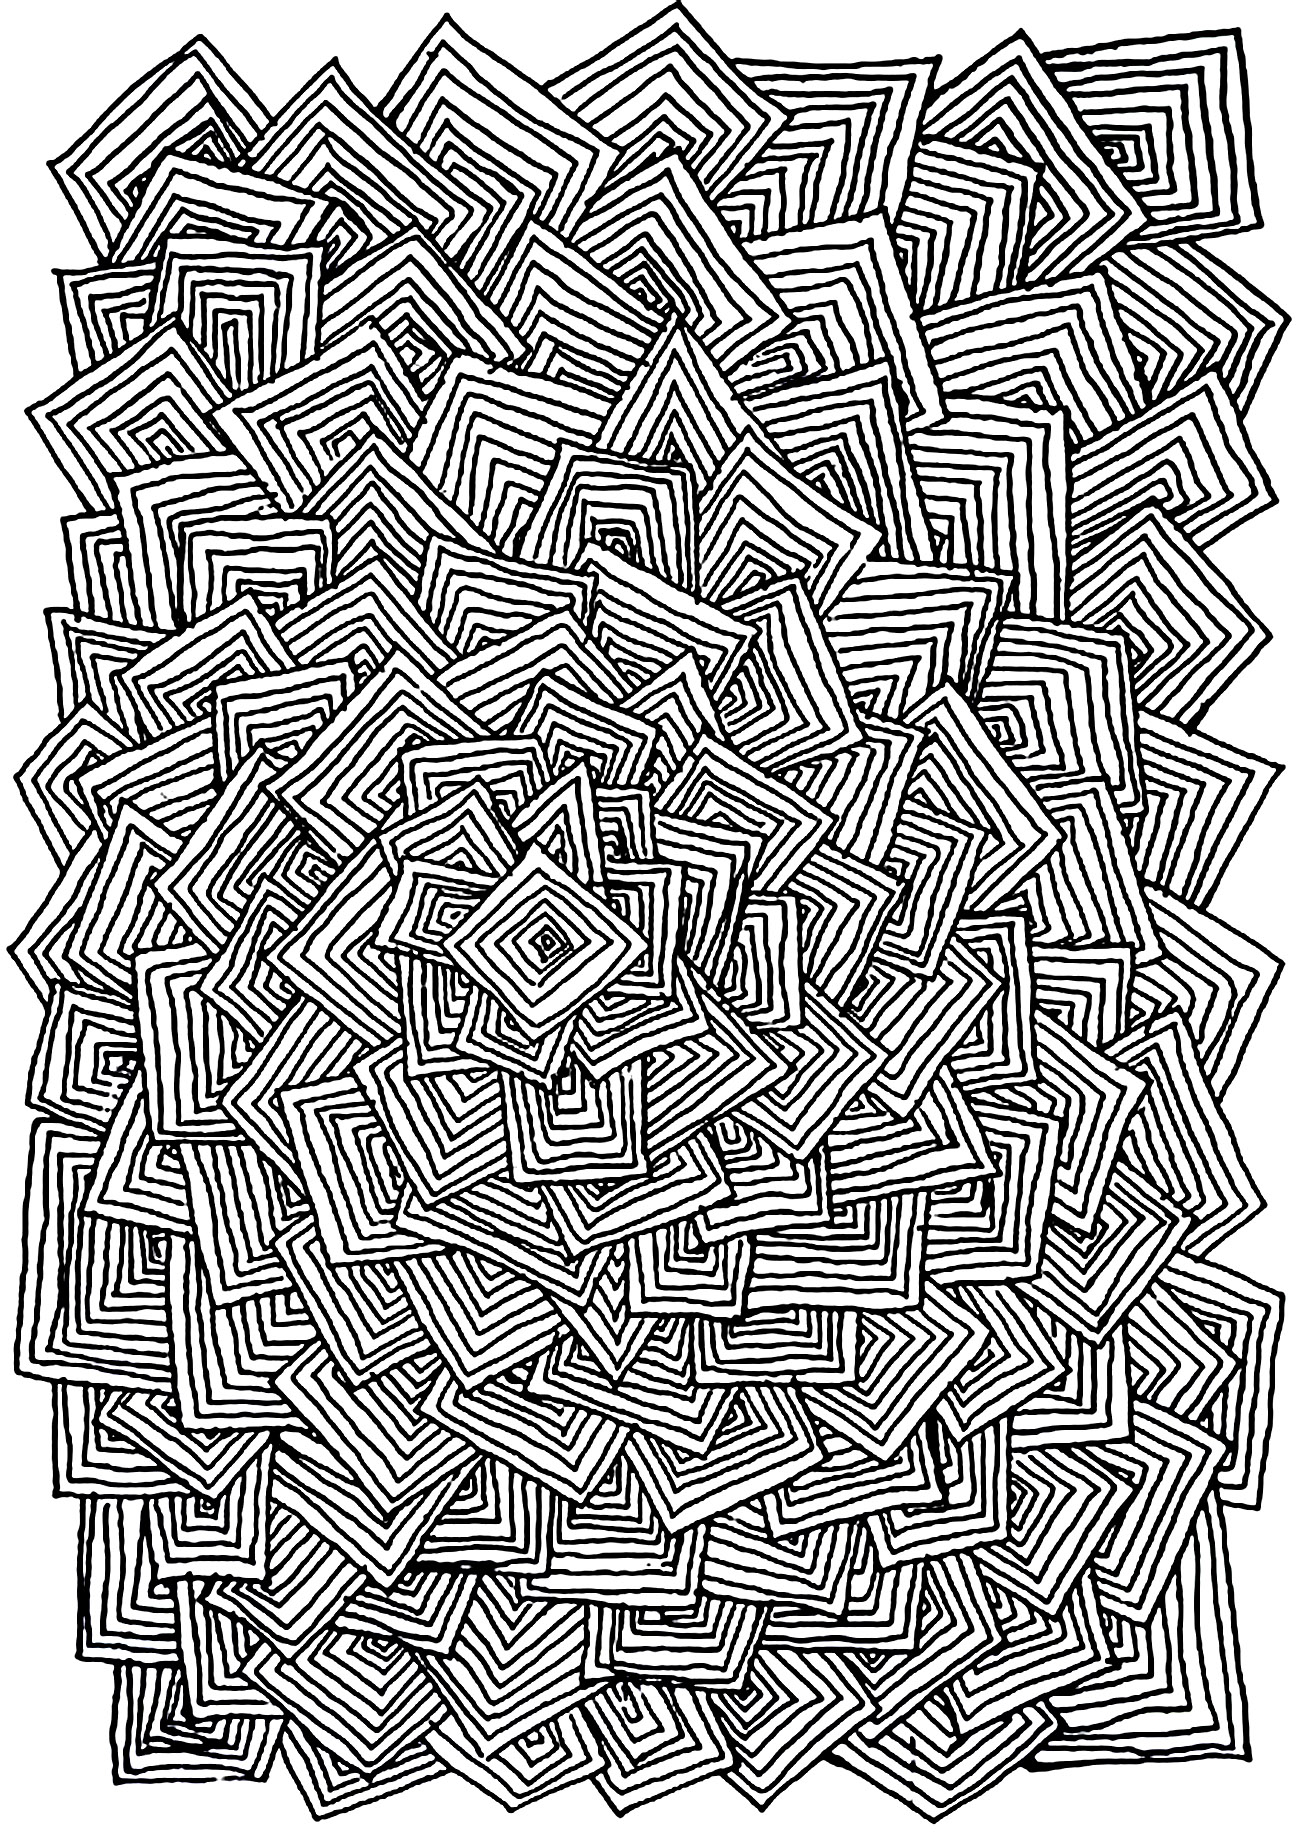 Relax Squares Zen And Anti Stress Coloring Pages For Adults